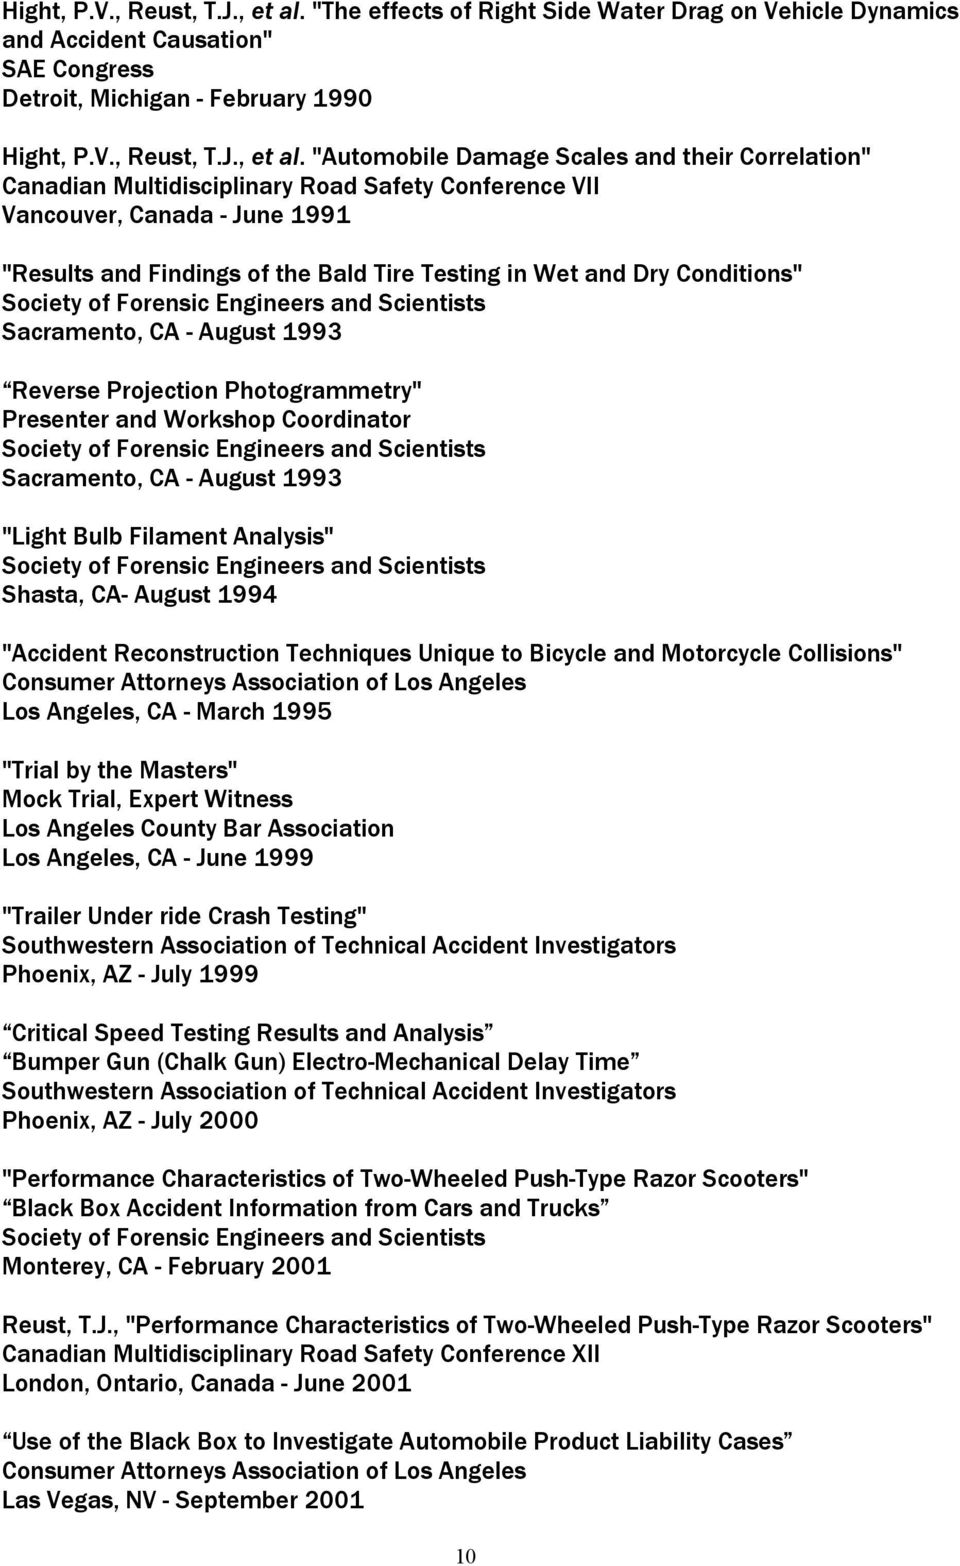 "Multidisciplinary Road Safety Conference VII Vancouver, Canada - June 1991 ""Results and Findings of the Bald Tire Testing in Wet and Dry Conditions"" Sacramento, CA - August 1993 Reverse Projection"